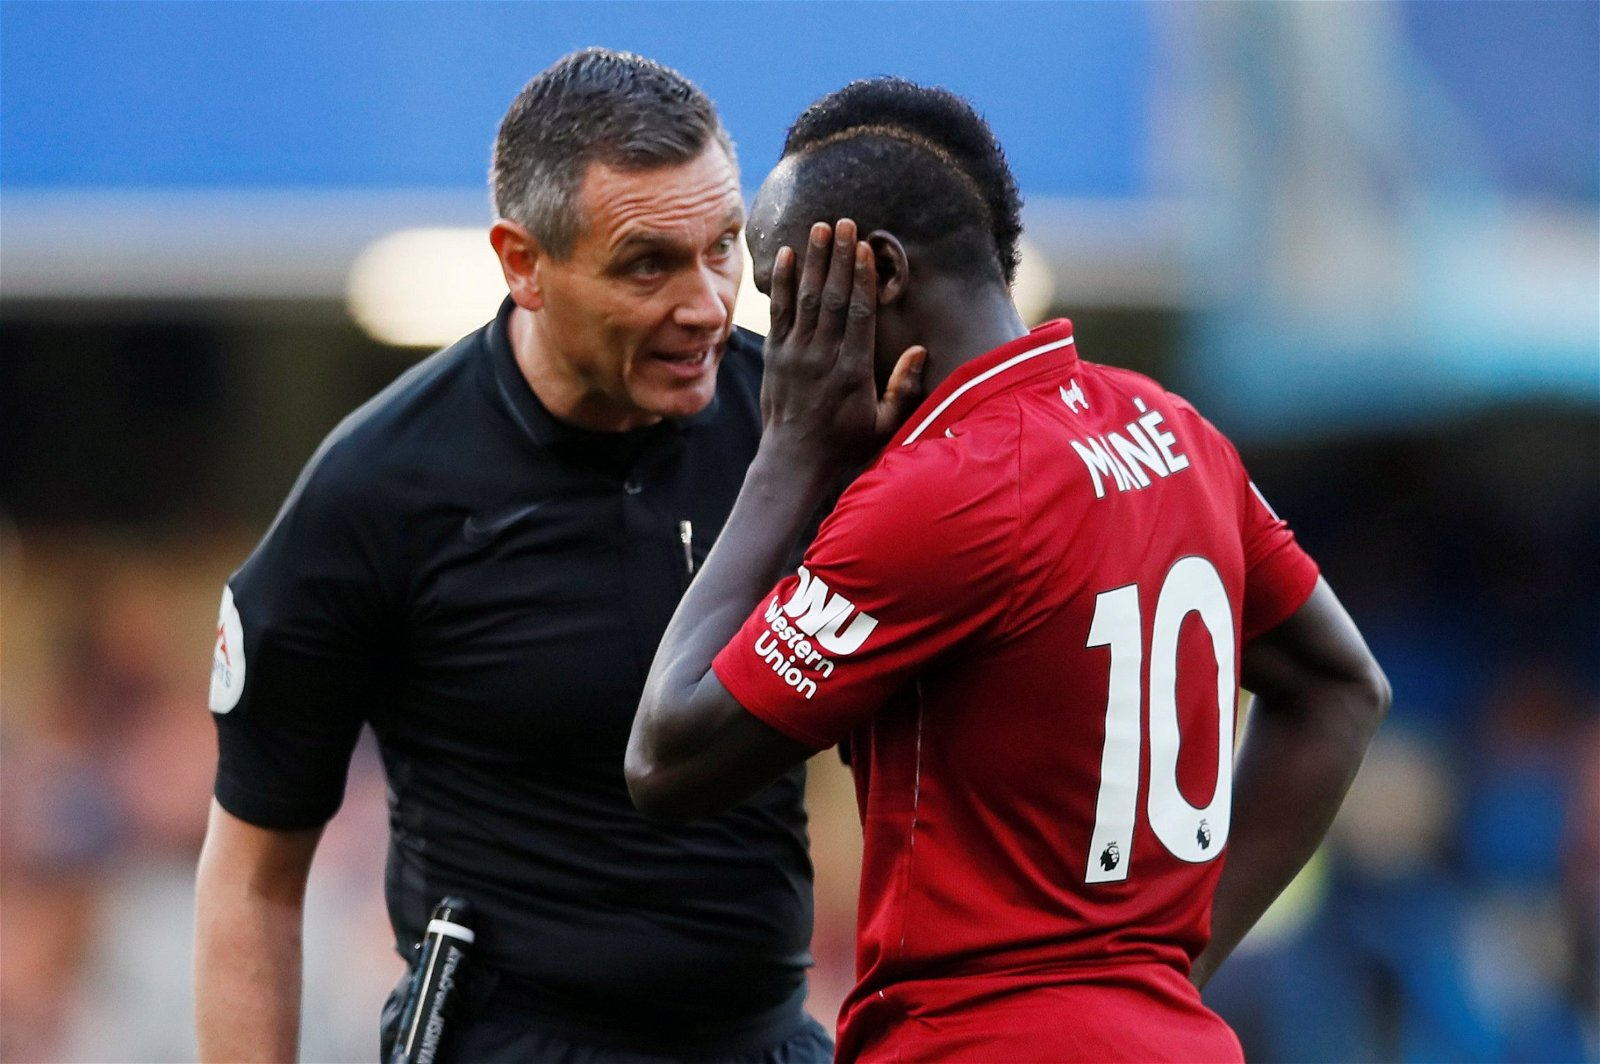 Andre Marriner talks to Sadio Mane